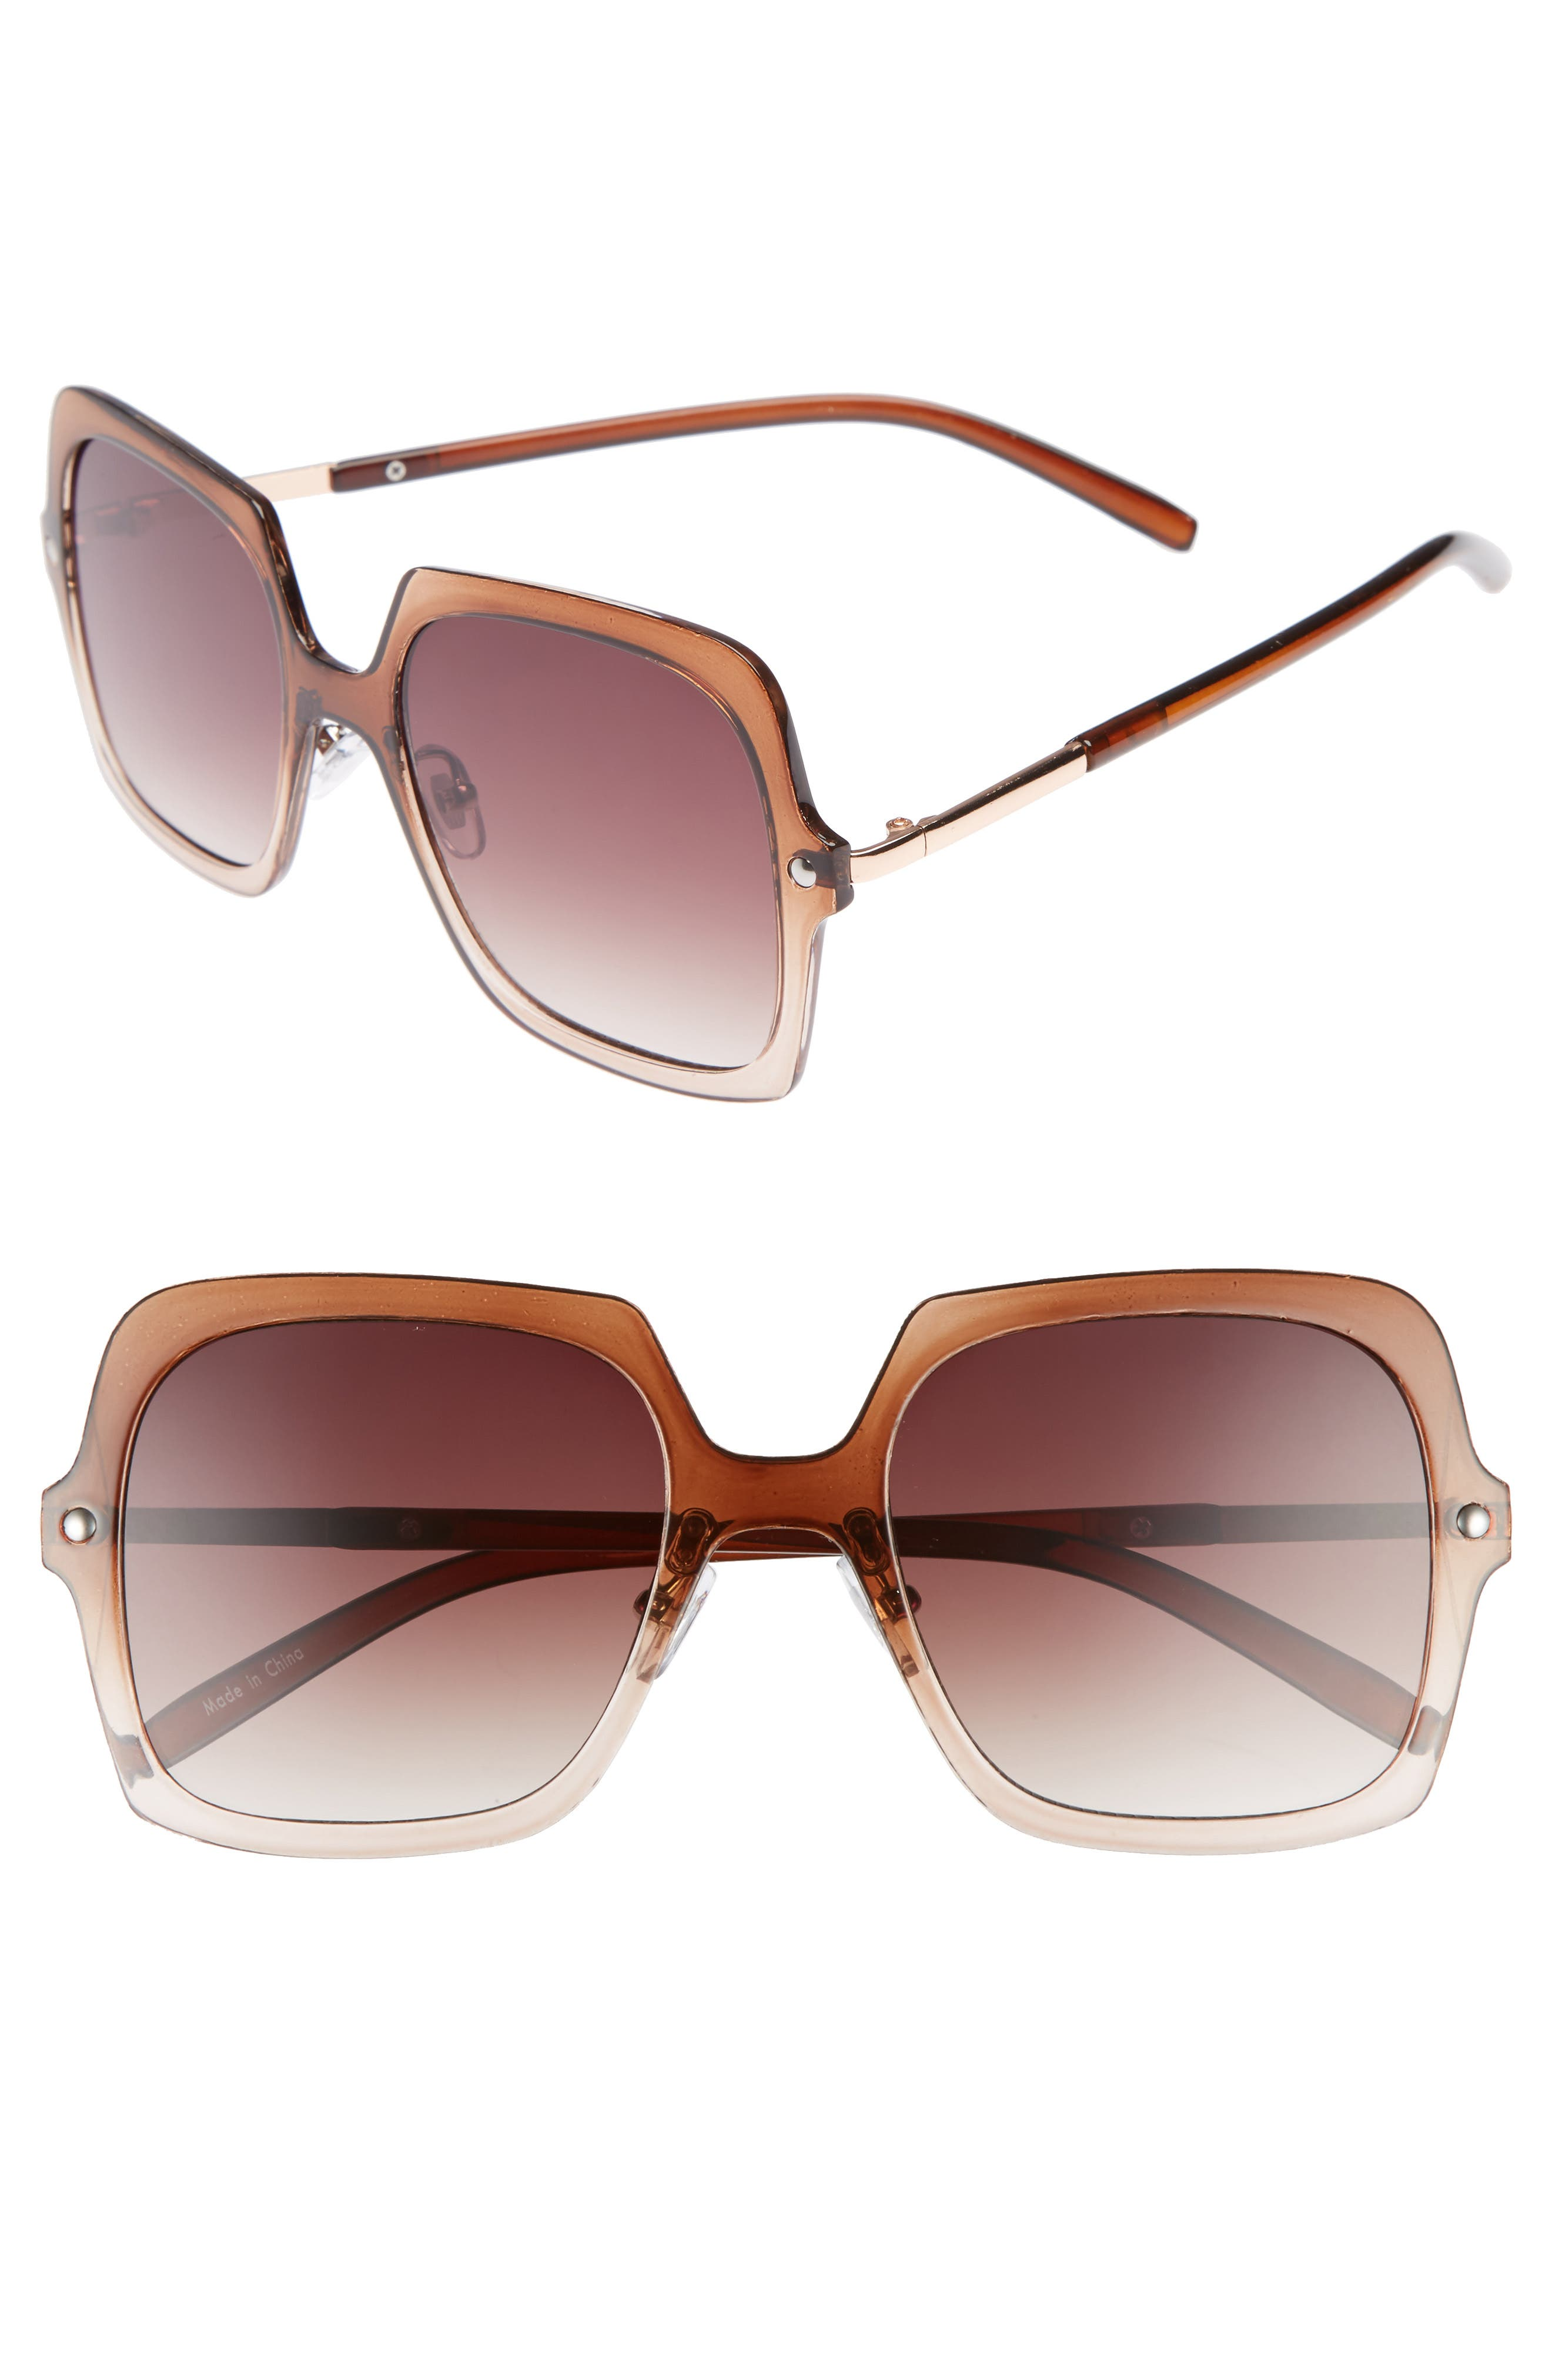 Translucent Square Sunglasses,                             Main thumbnail 1, color,                             Ombre Brown